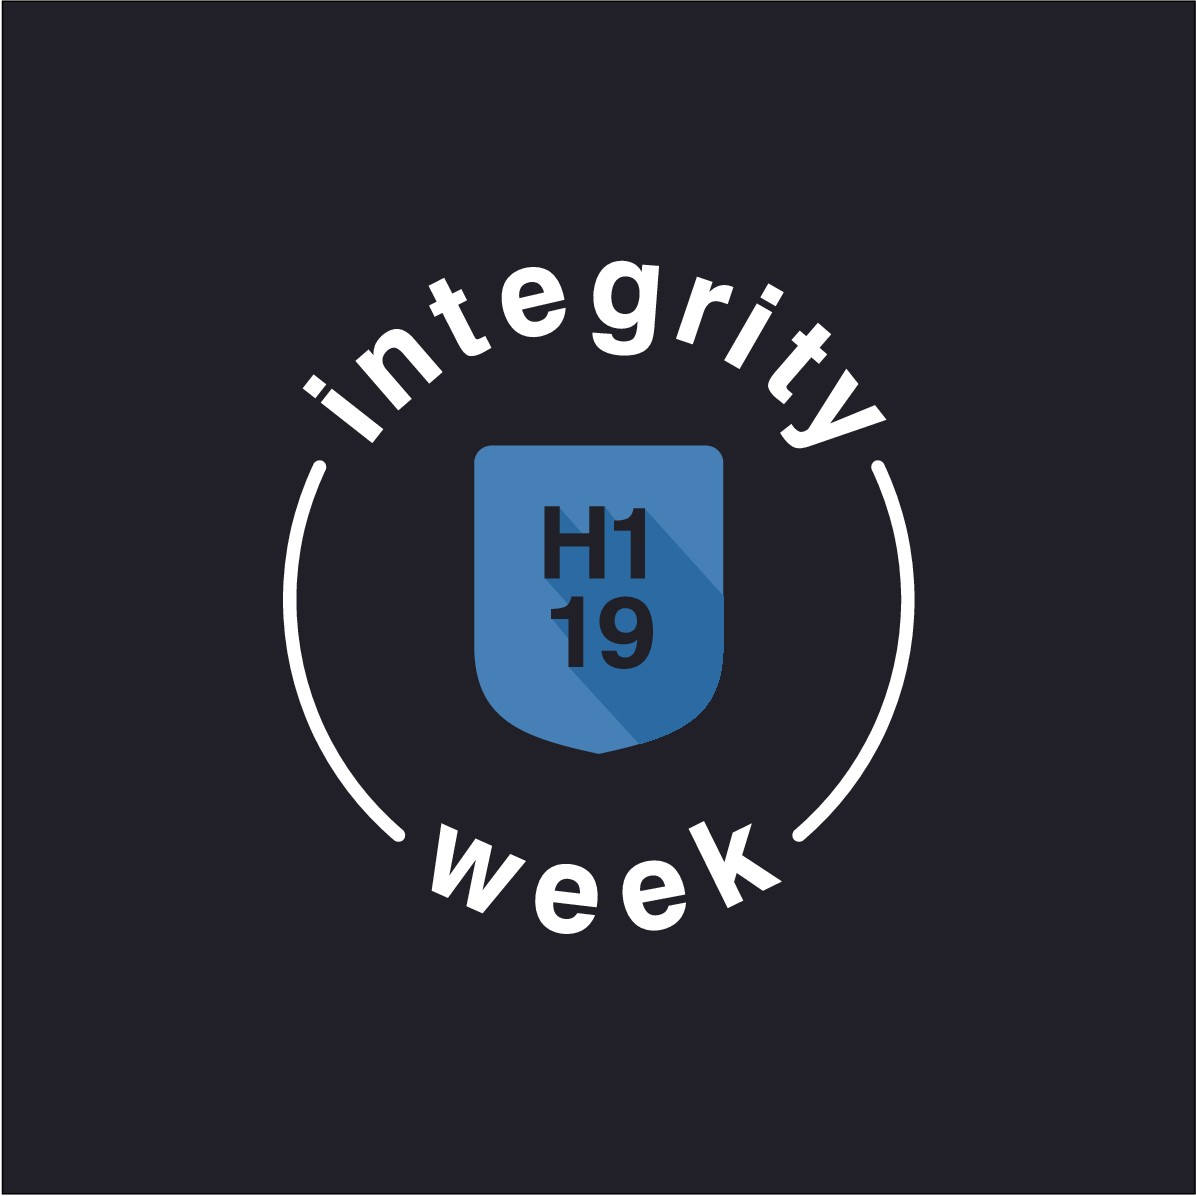 Editing for already existing logo for Integrity Week